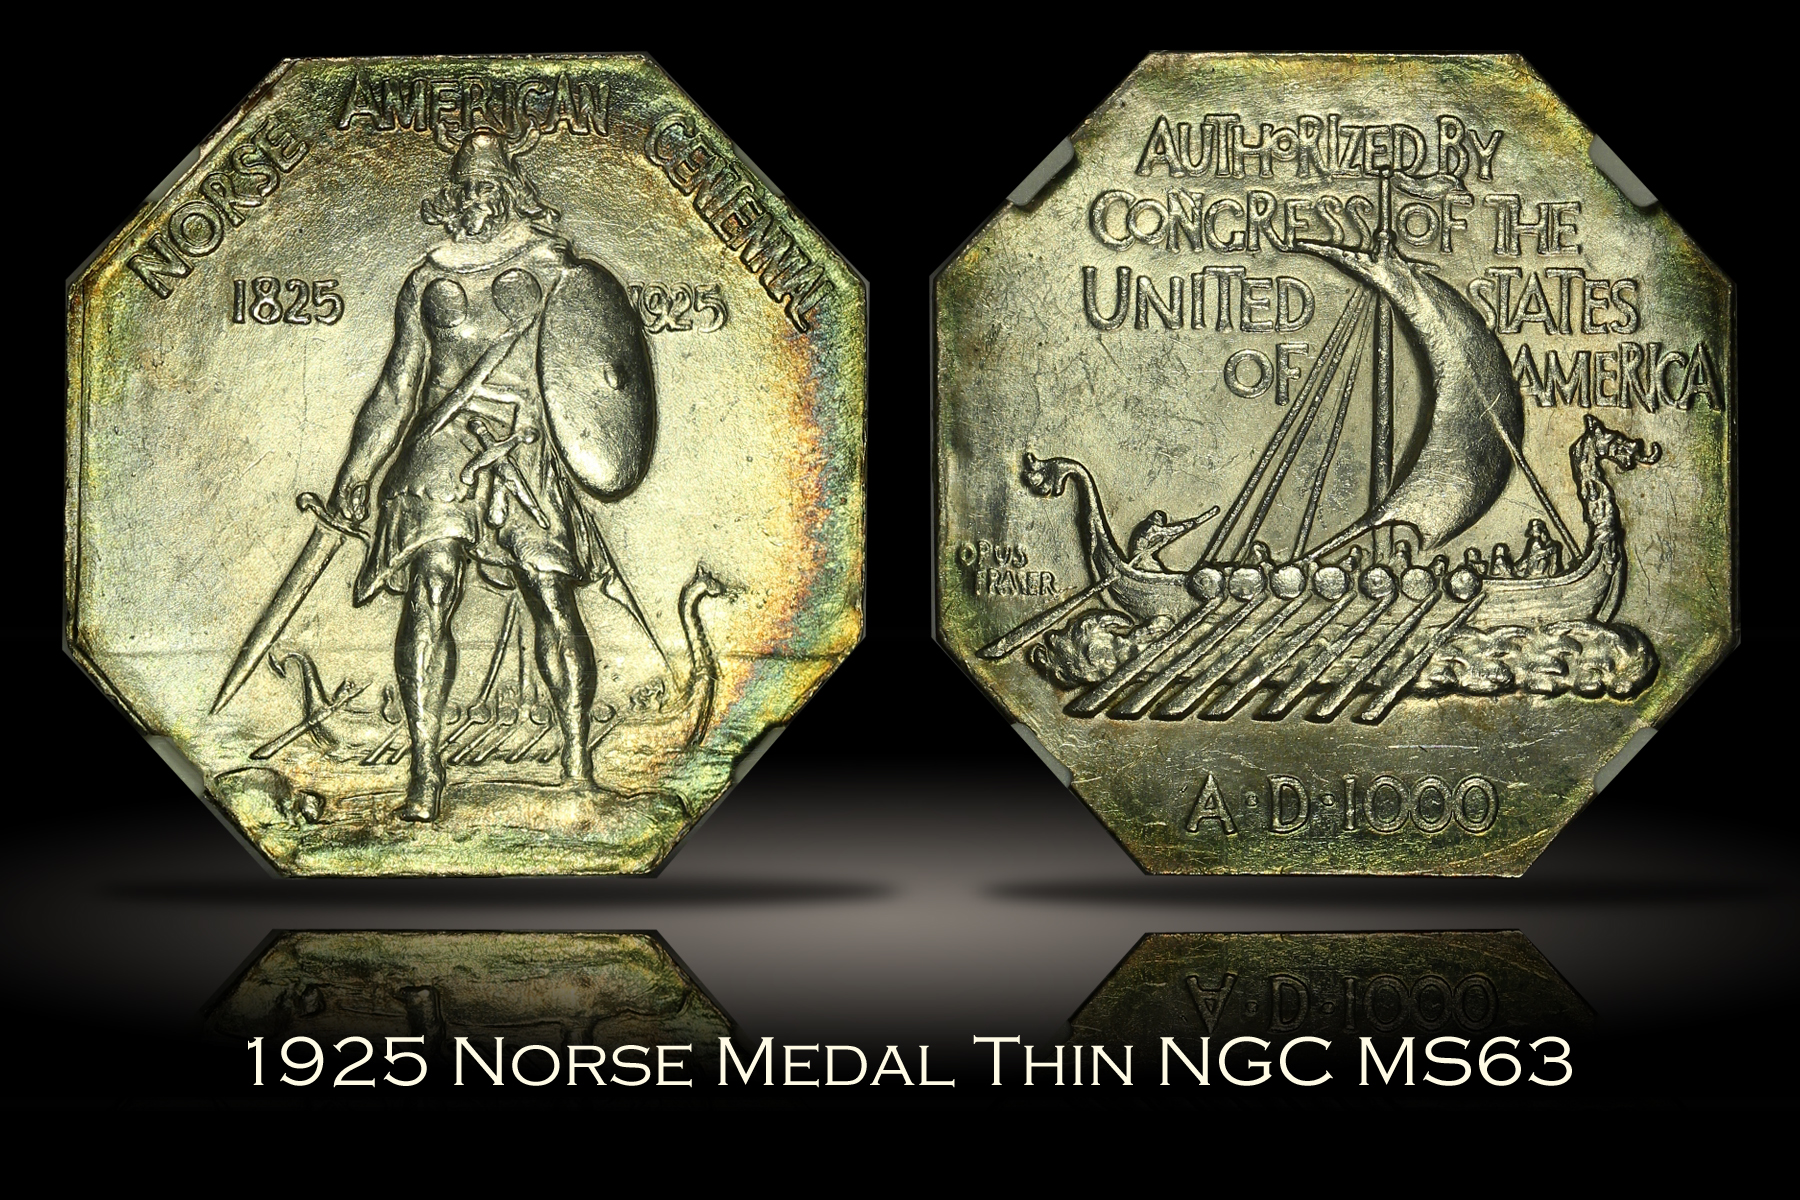 1925 Norse Medal Thin NGC MS63